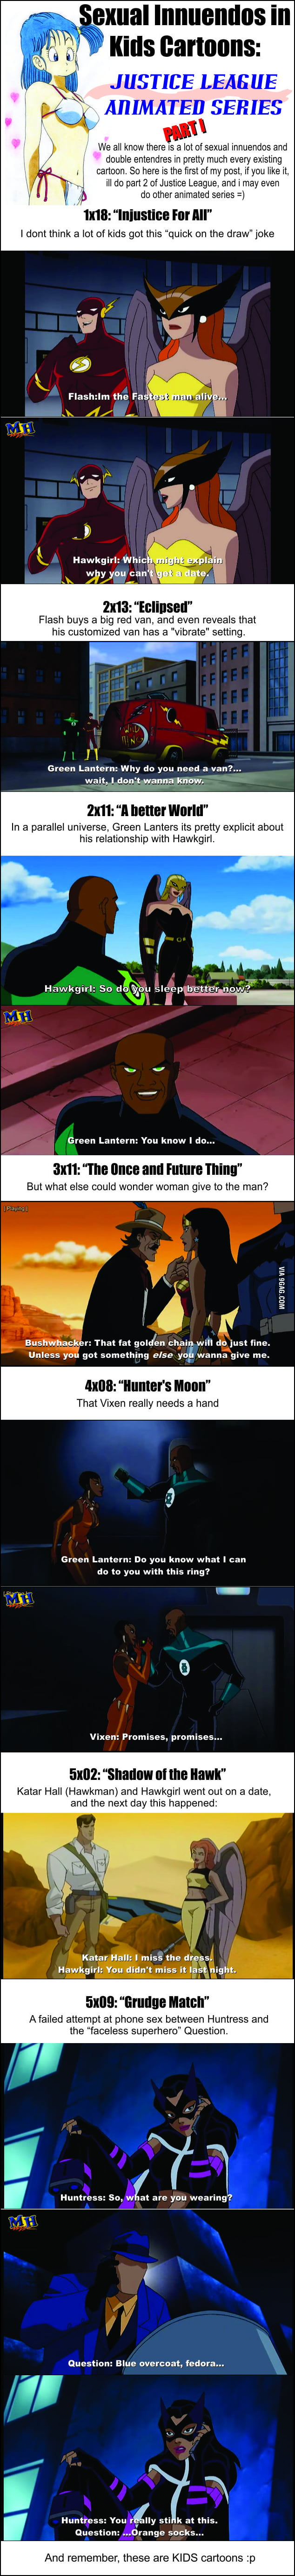 Sexual innuendos in cartoons 9gag